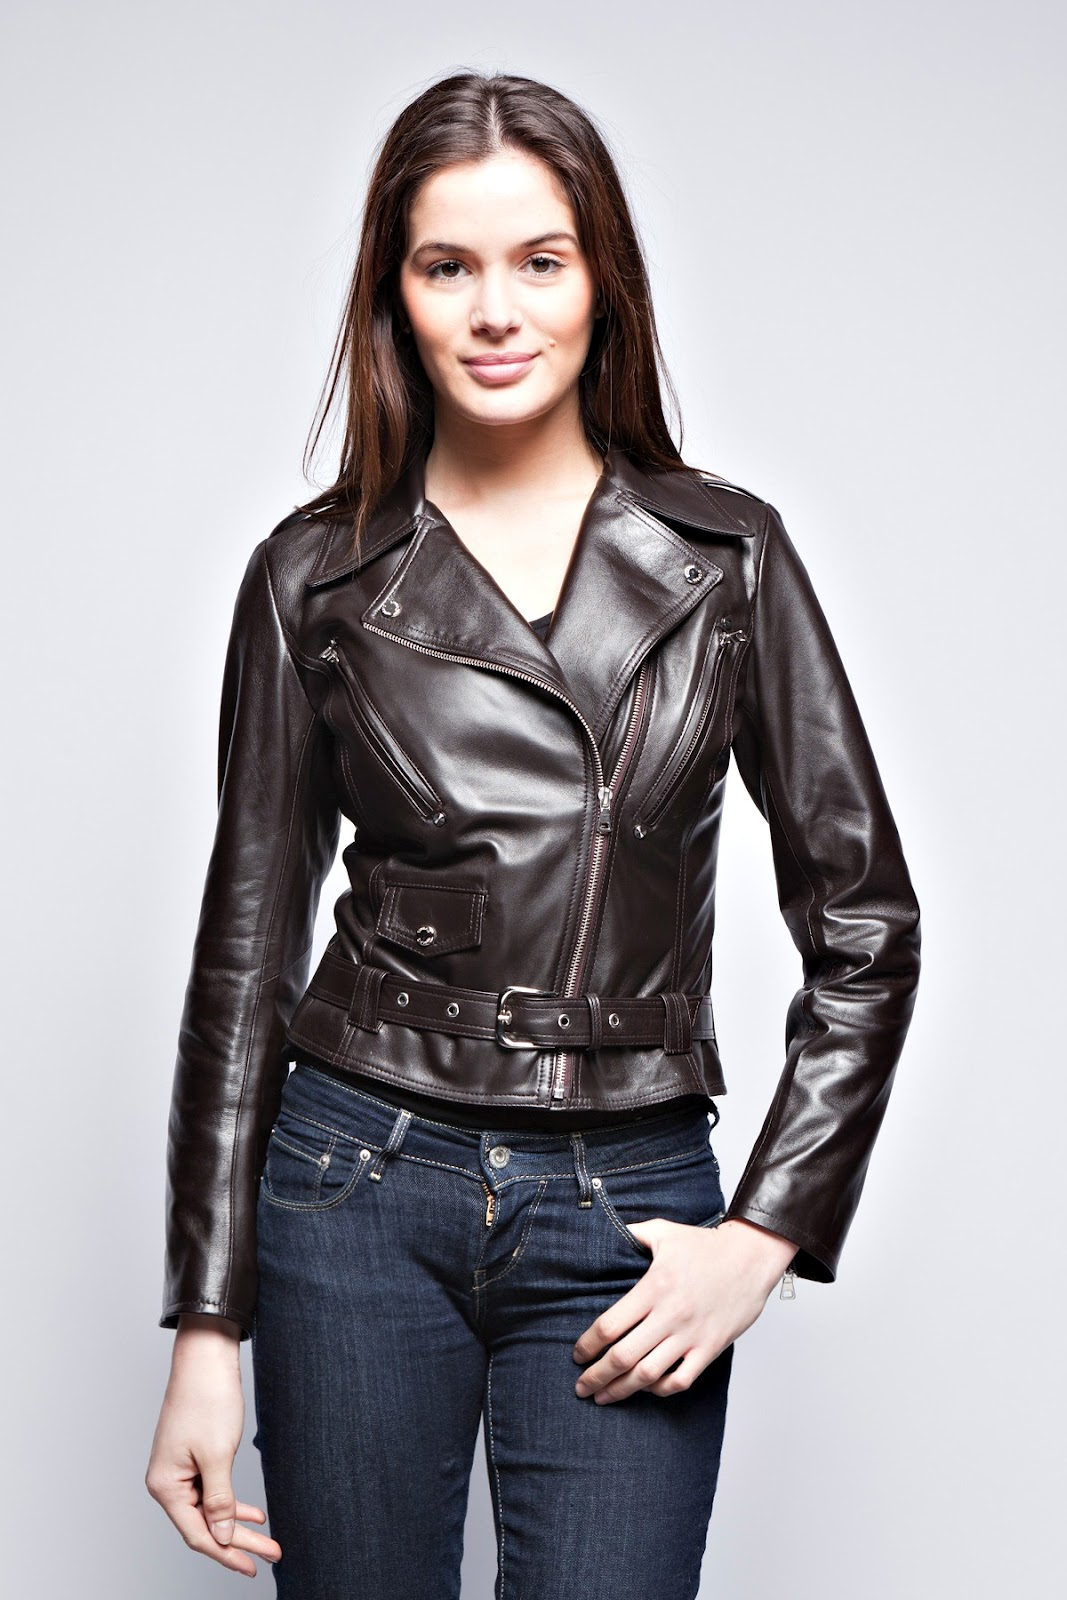 Leather Cuir The Leather Jackets For Women And Men By Prestige Cuir Perfecto